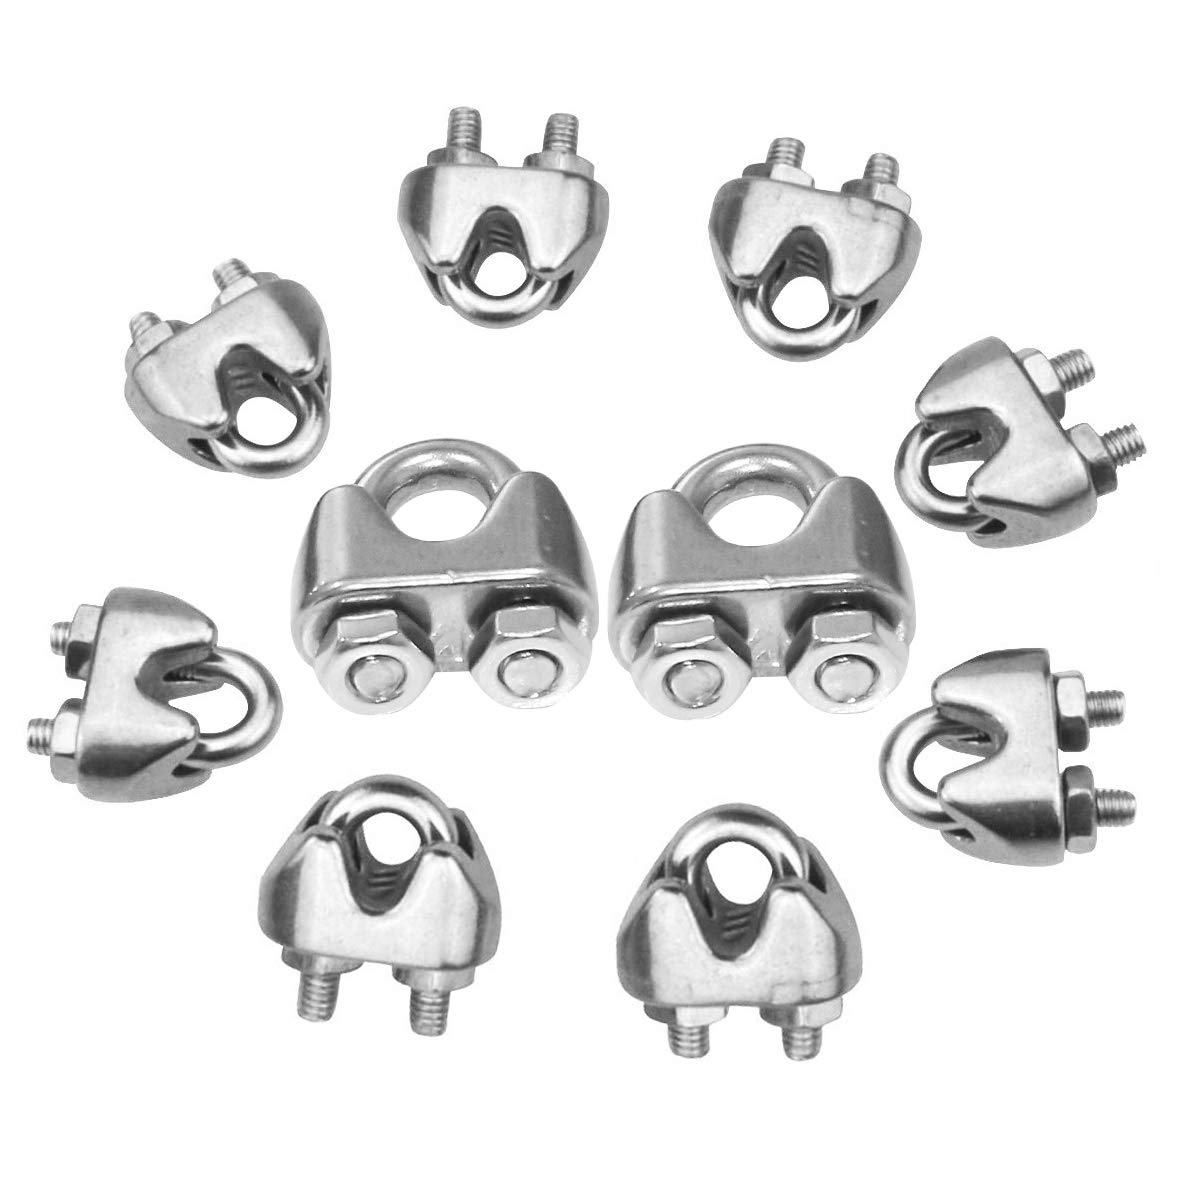 GLE2016 Stainless Steel Cable Clamp Saddle Fastener for Marine Ships Vessels Wire Rope Clips